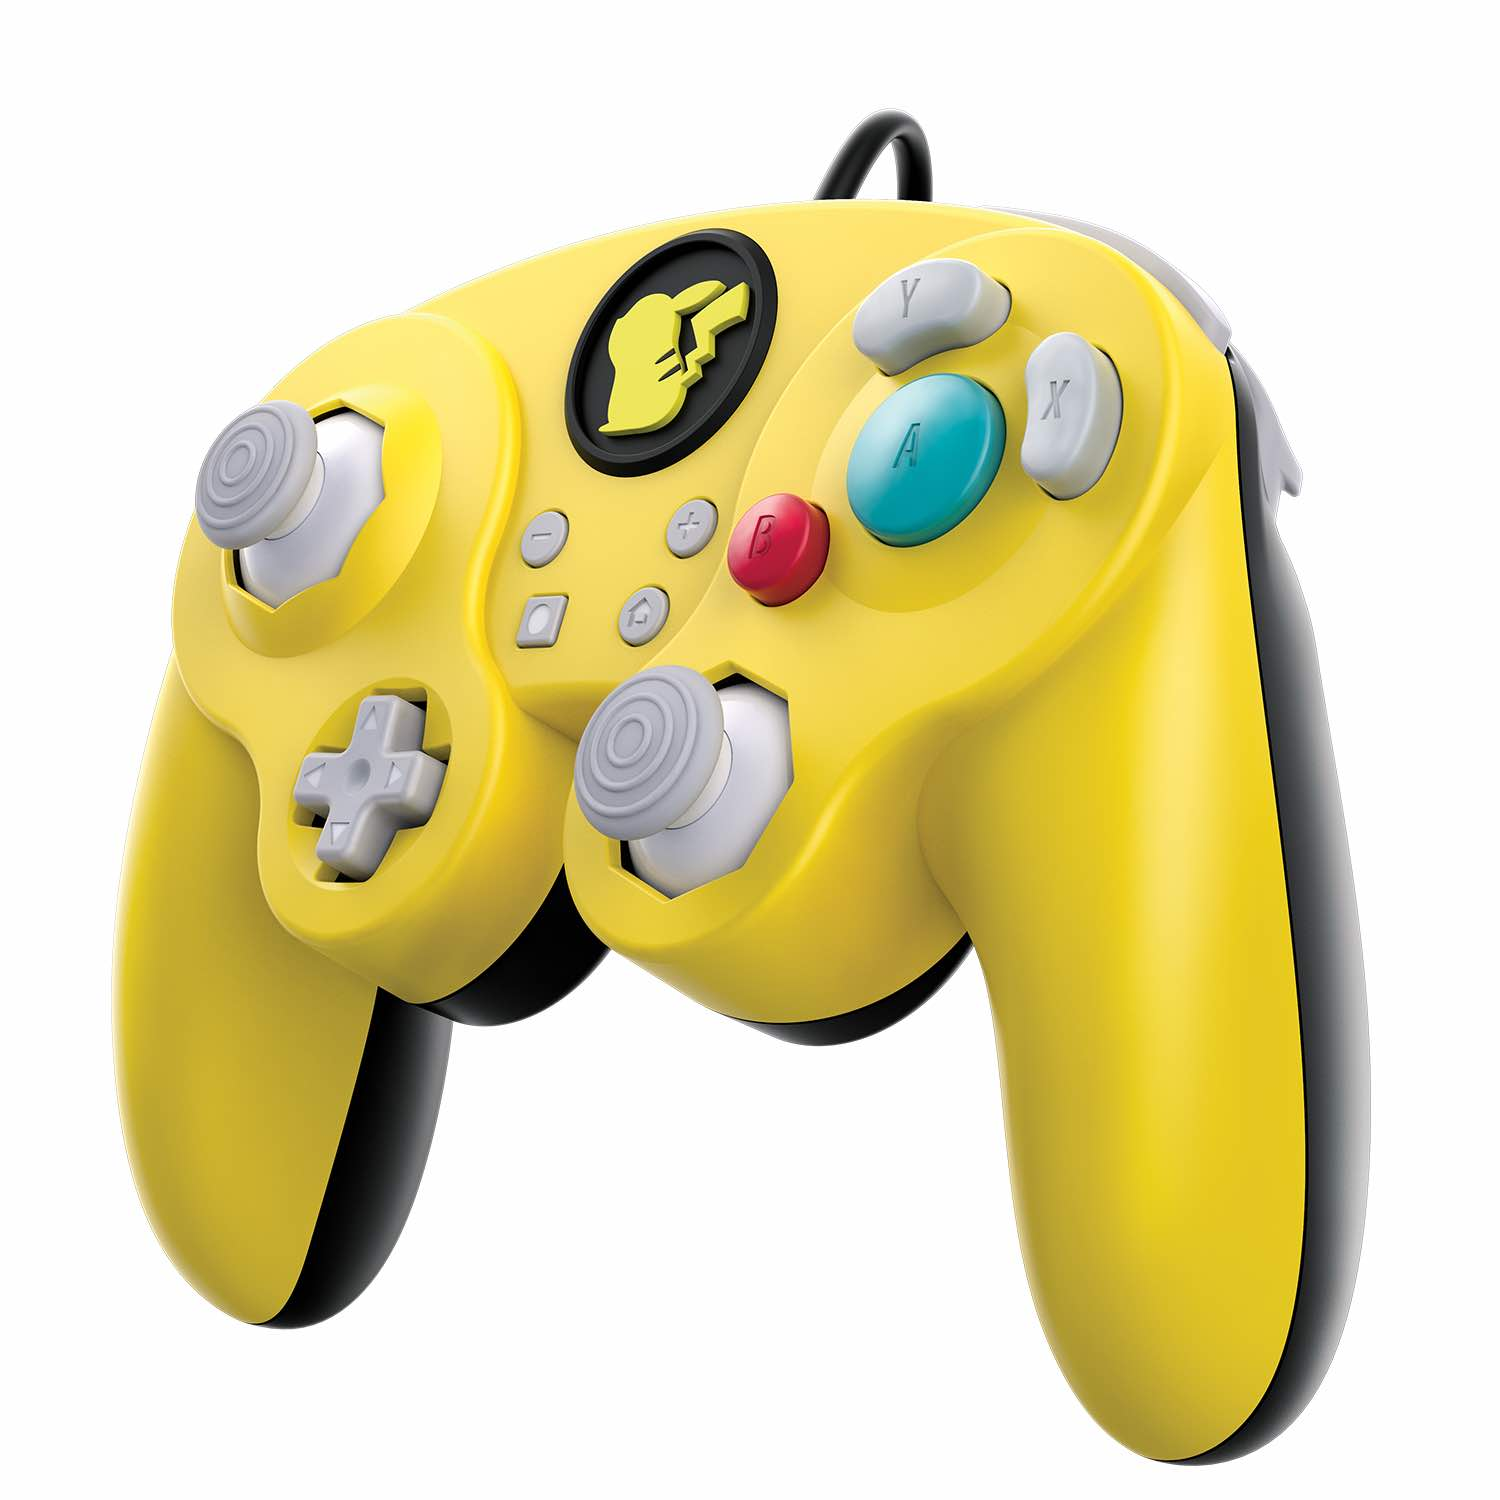 PDP Pikachu Wired Smash Pad Pro Photo 2